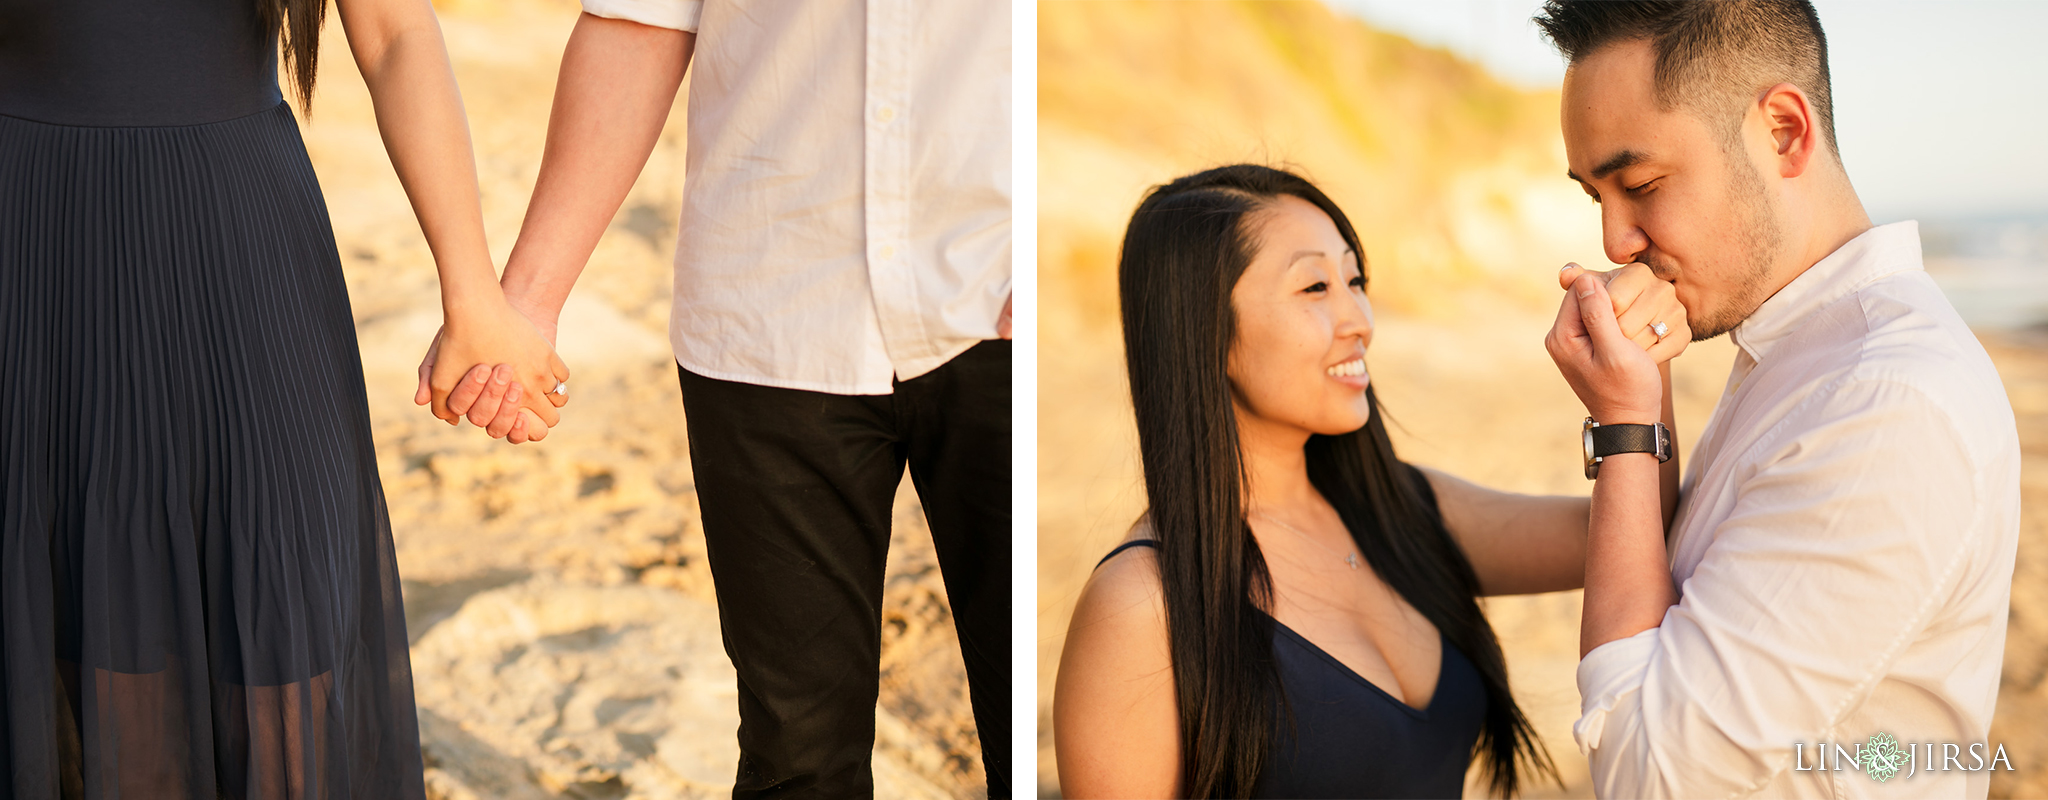 09 Heisler Beach Orange County Proposal Engagement Photography